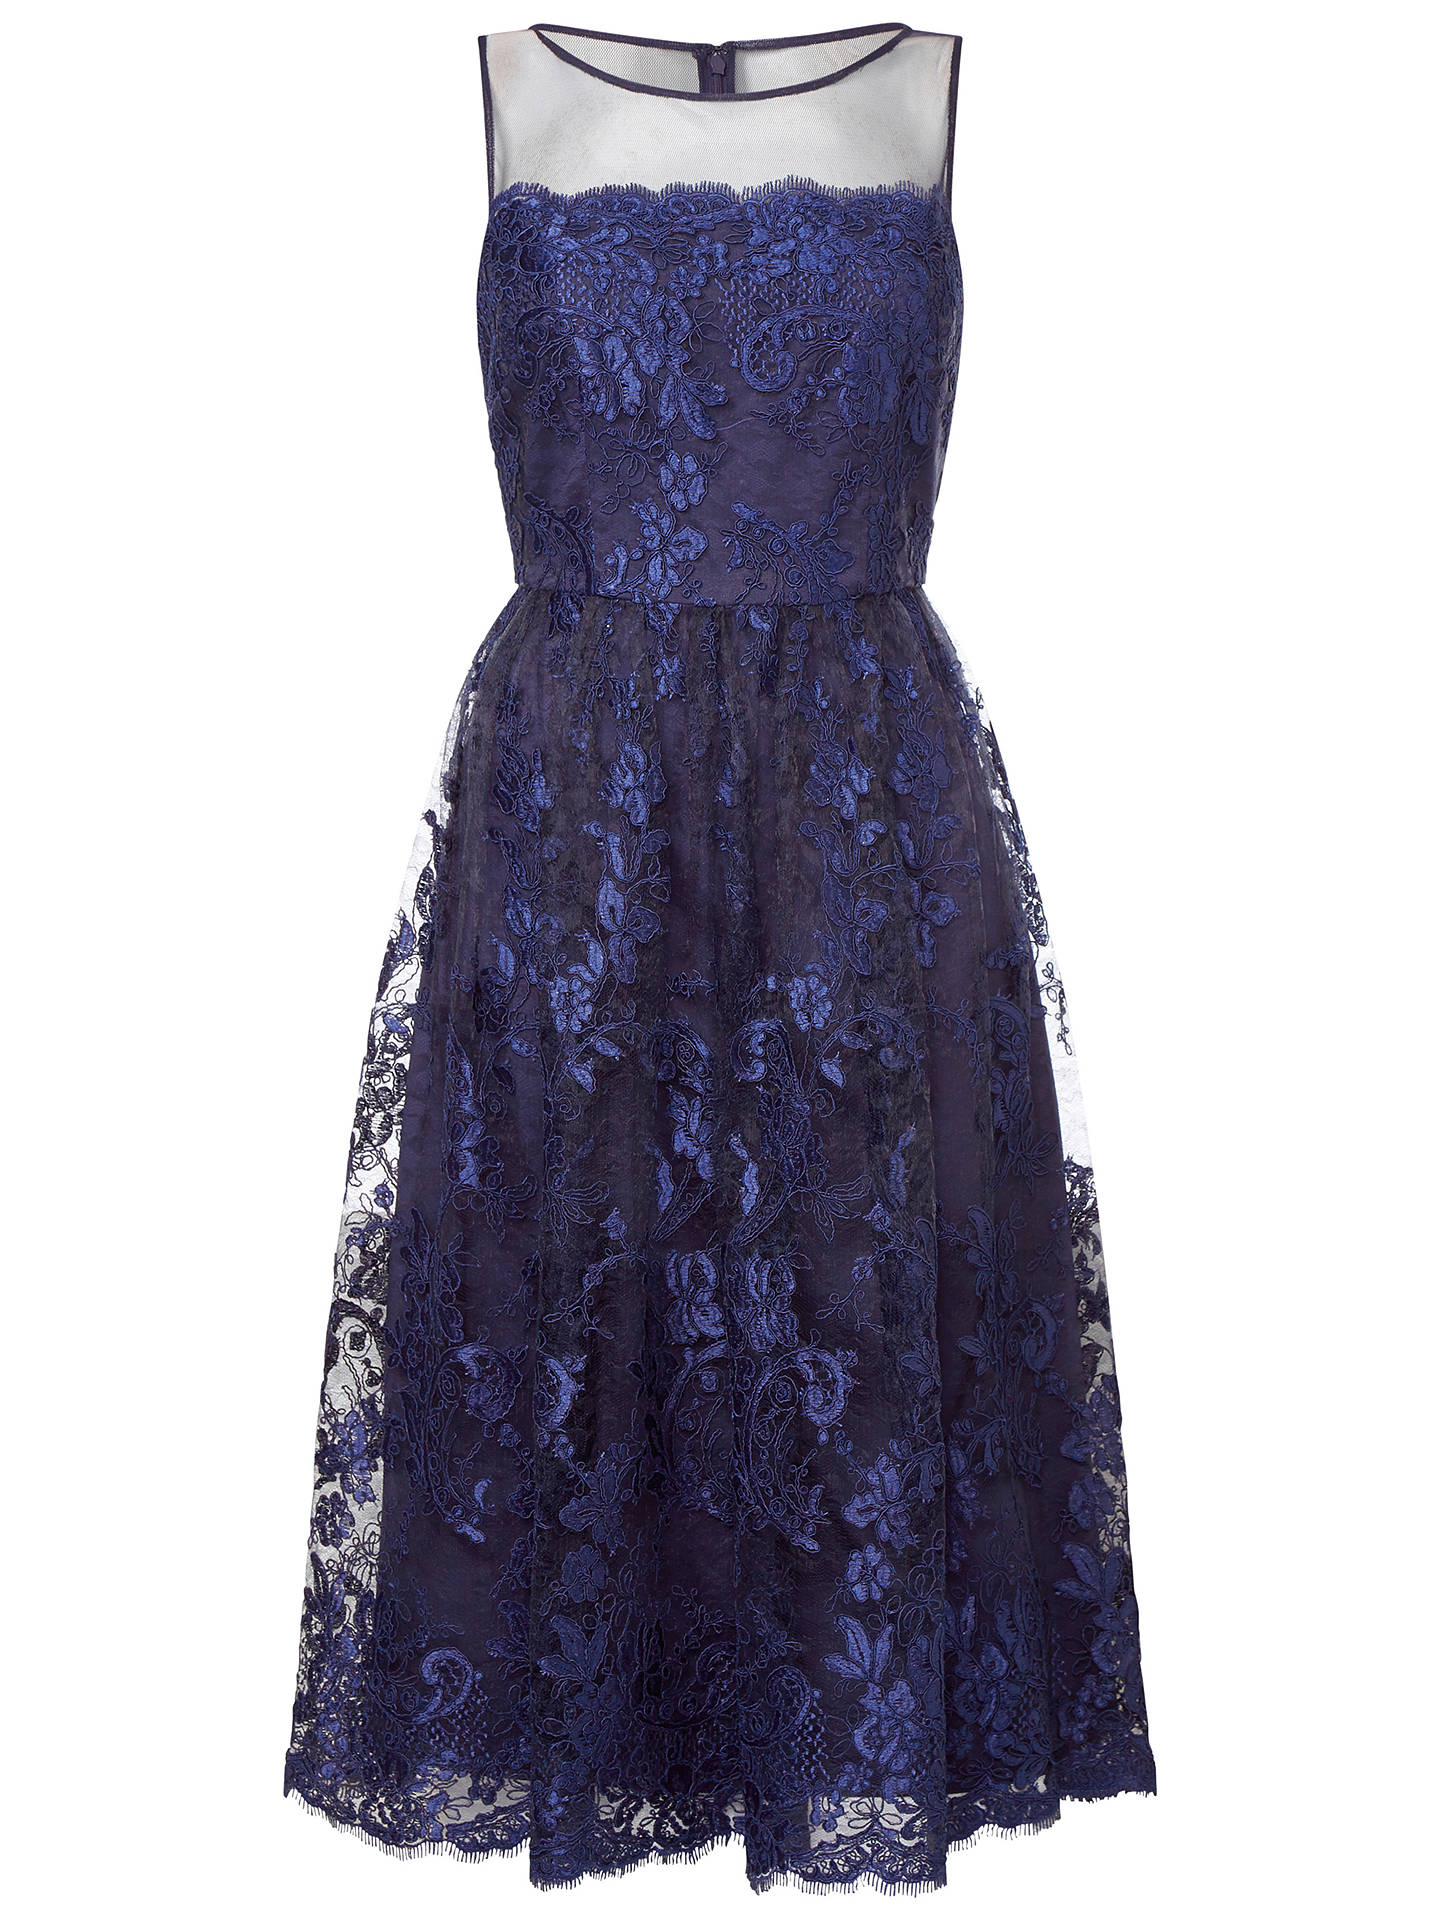 Buy Adrianna Papell Sleeveless Tea Length Dress, Navy, 8 Online at johnlewis.com